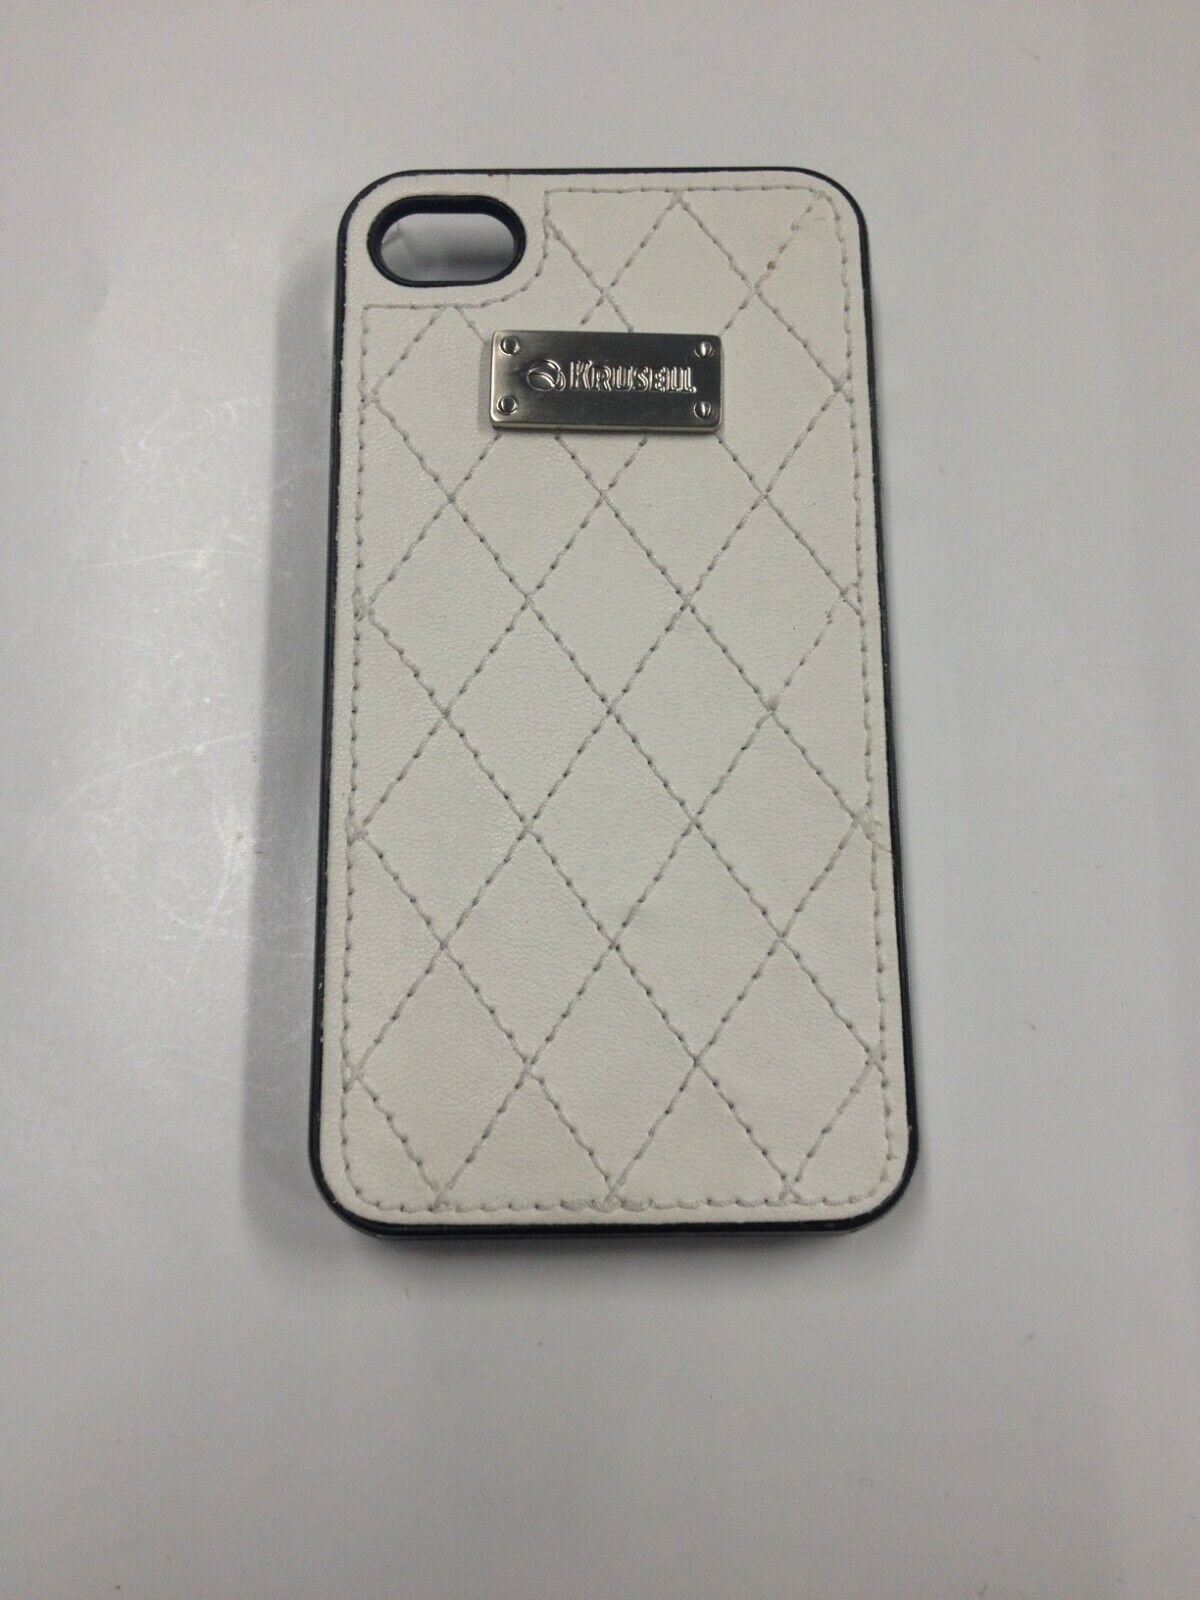 Krusell Coco Undercover iPhone 4 Case - White-89516-